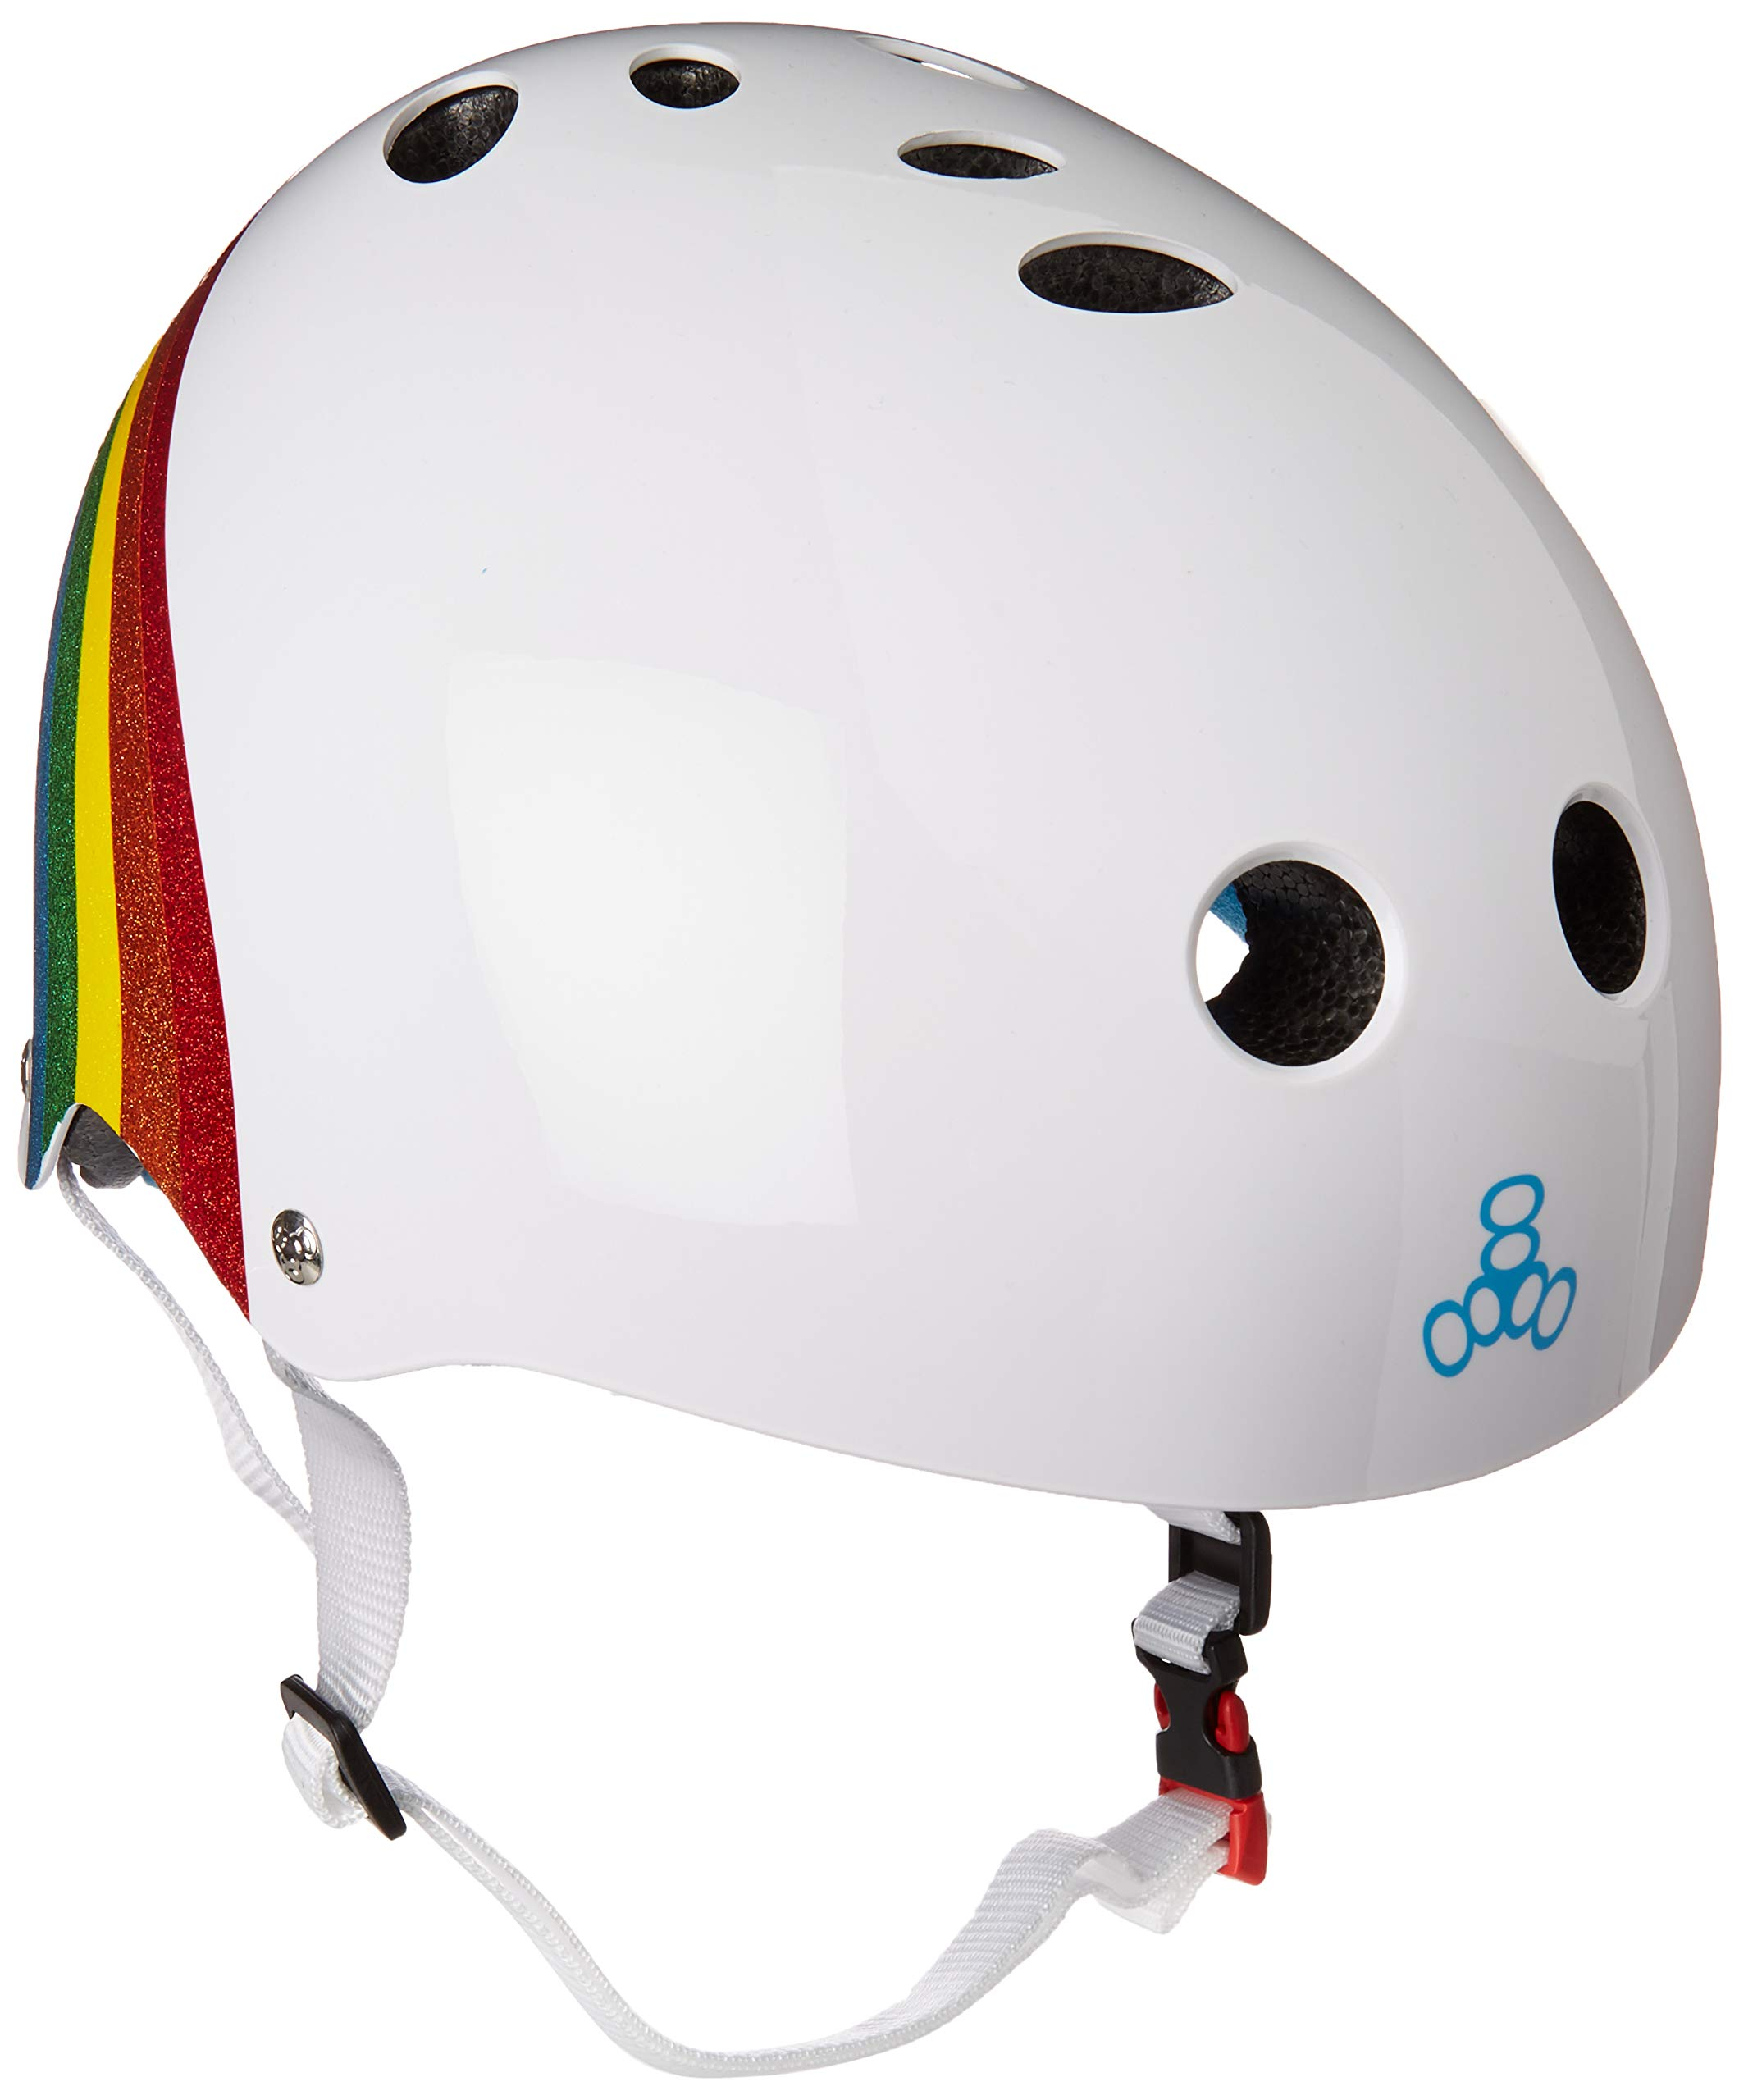 Triple Eight THE Certified Sweatsaver Helmet for Skateboarding, BMX, and Roller Skating, Rainbow Sparkle, X-Small / Small